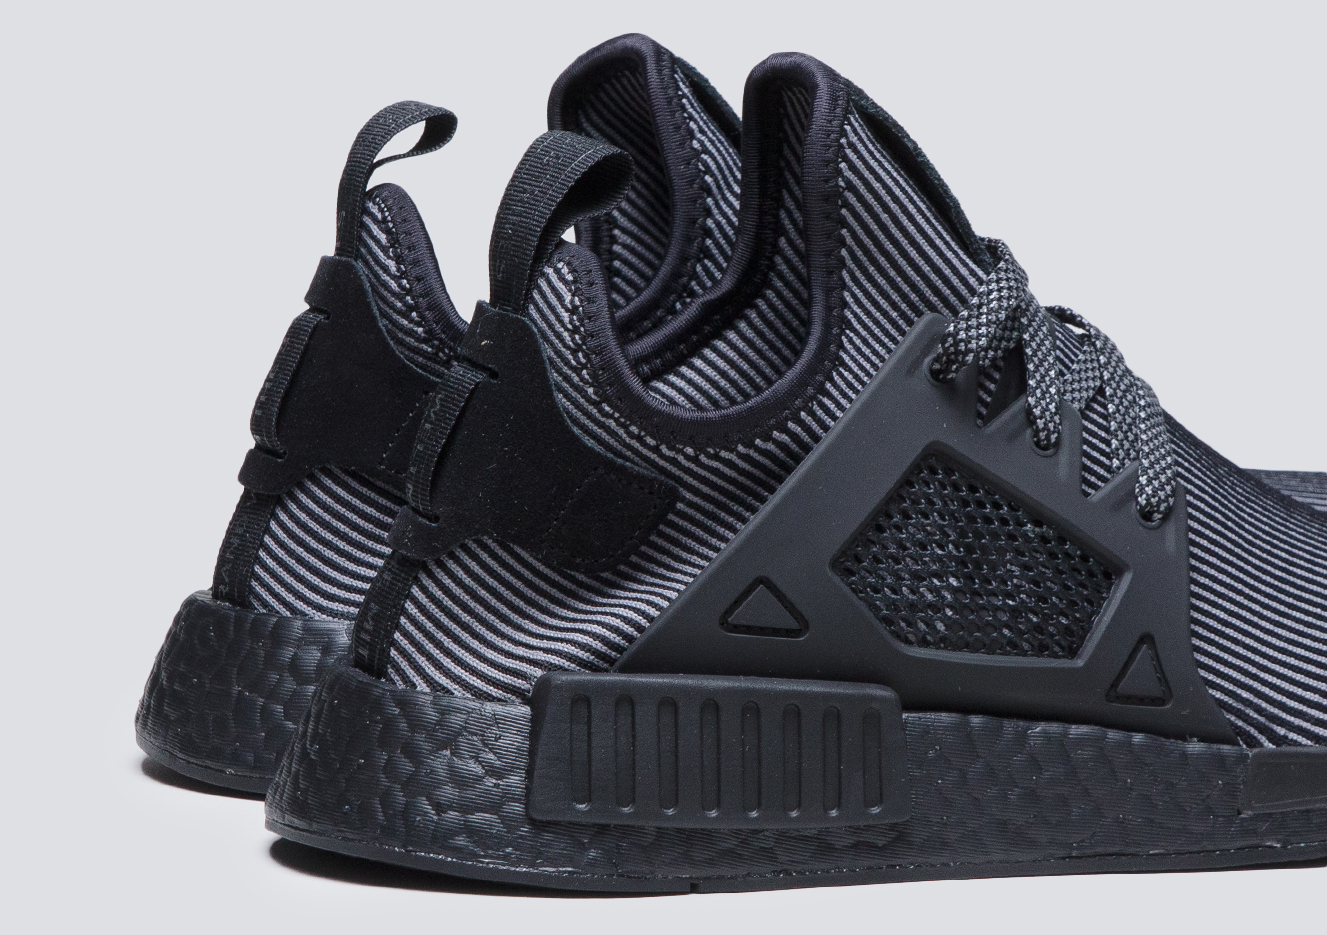 new style cb2c1 ac70f adidas-s32211-running-nmd xr1-pk-sneakers-milano-store-3.jpg